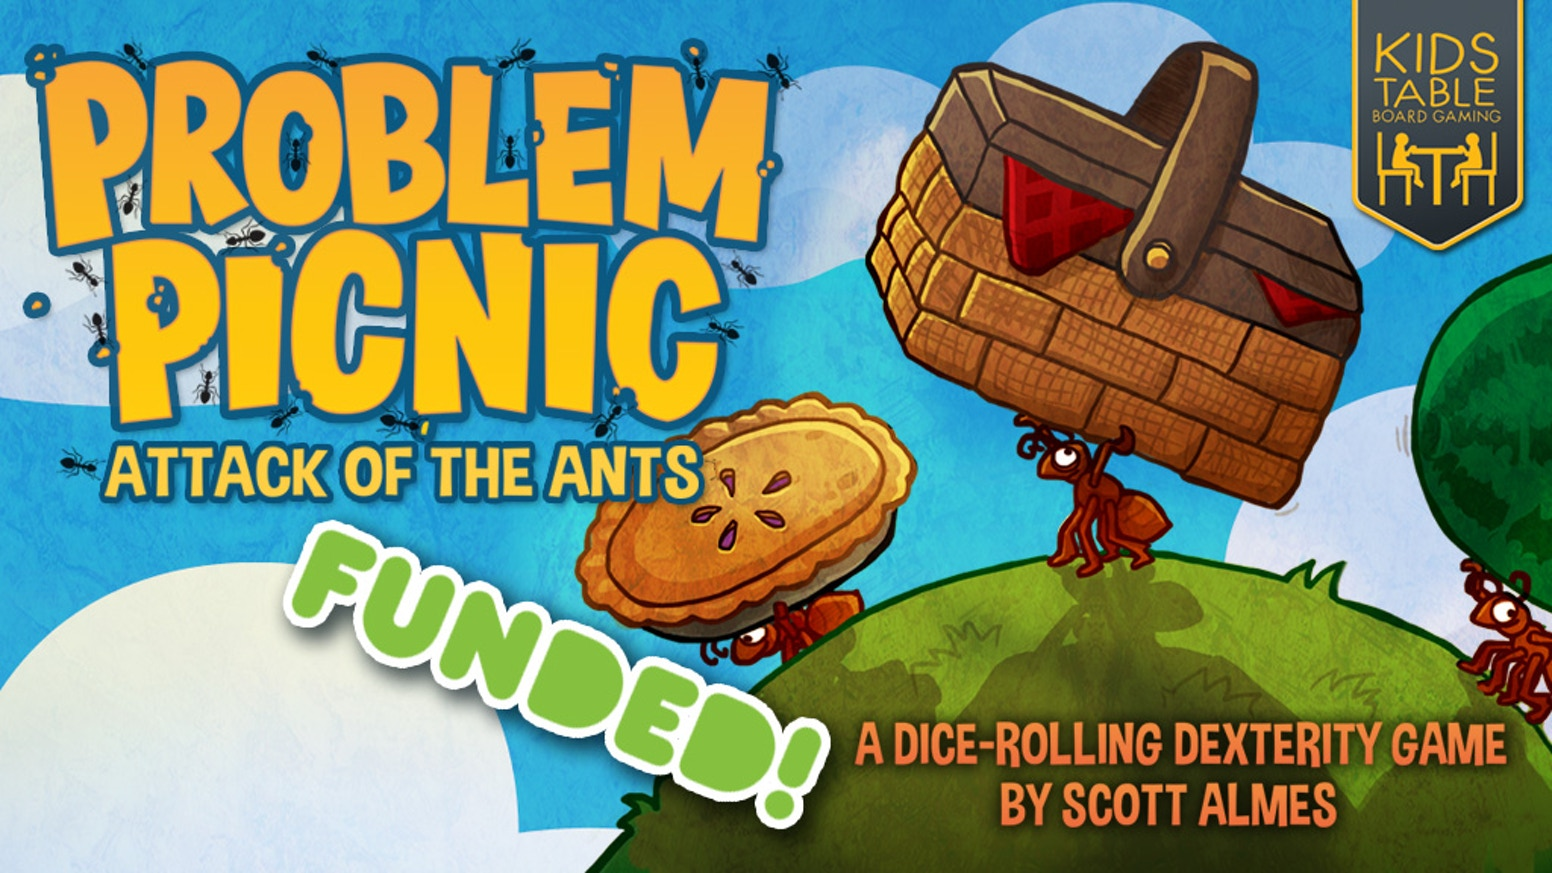 Problem Picnic is a dice-rolling dexterity     family game • by Scott Almes • Art by Josh Cappel. Miss the campaign? Pre-order by clicking below.